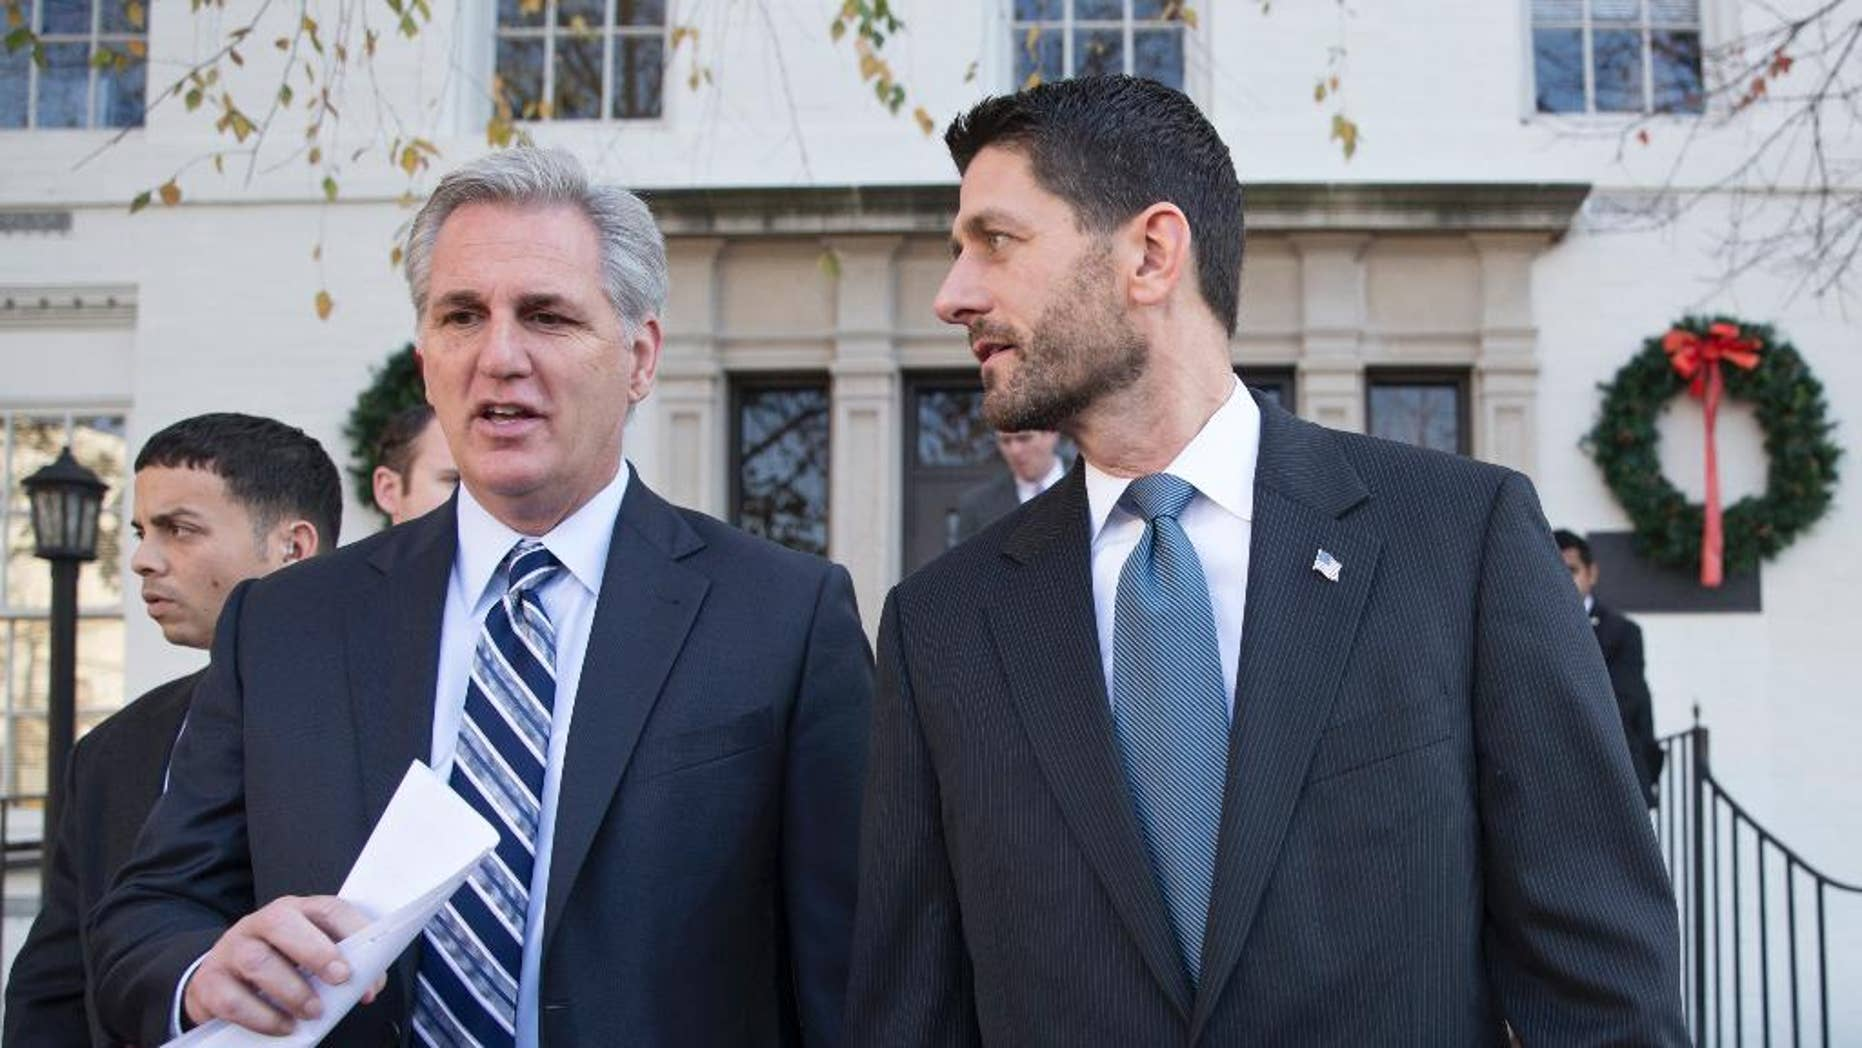 """Speaker of the House Paul Ryan, R-Wis., right, and Majority Leader Kevin McCarthy, R-Calif., leave a news conference following a GOP caucus meeting, at the Republican National Headquarters on Capitol Hill in Washington, Tuesday, Dec. 8, 2015. Ryan dismissed Republican presidential candidate Donald Trump's comments on Muslims, saying such views are """"not what this party stands for and more importantly it's not what this country stands for.""""  (AP Photo/J. Scott Applewhite)"""